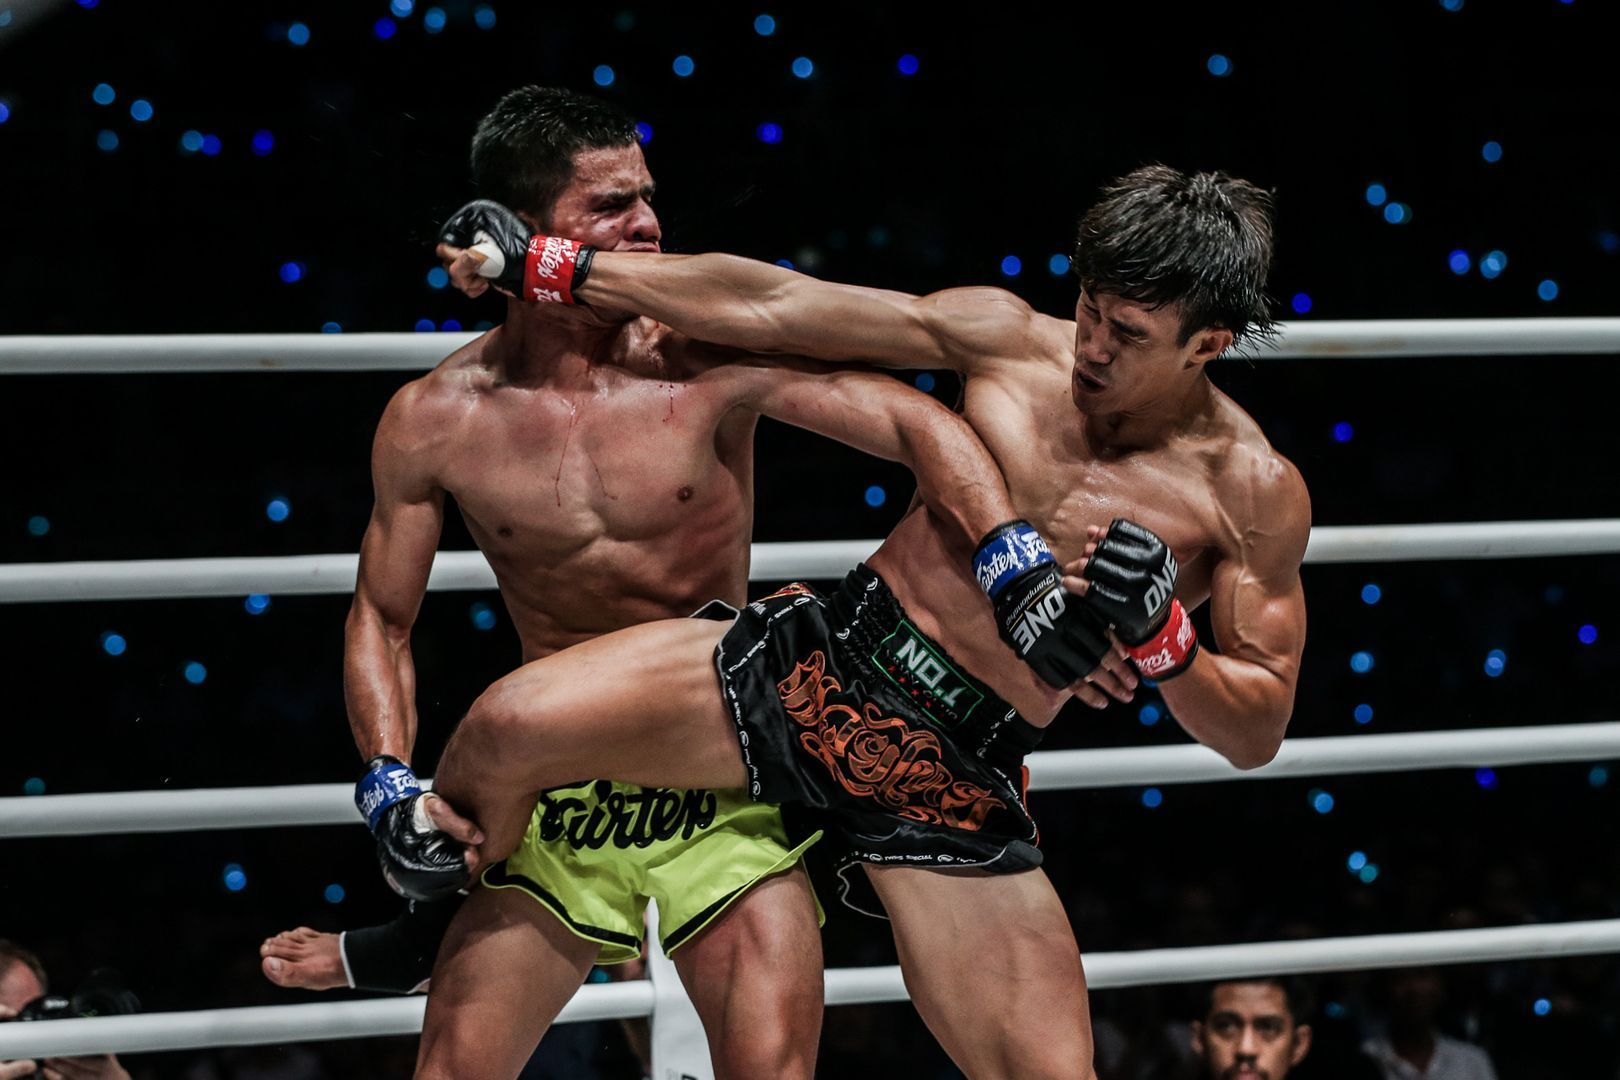 Vietnam's Nguyen Tran Duy Nhat connects with a spinning back fist